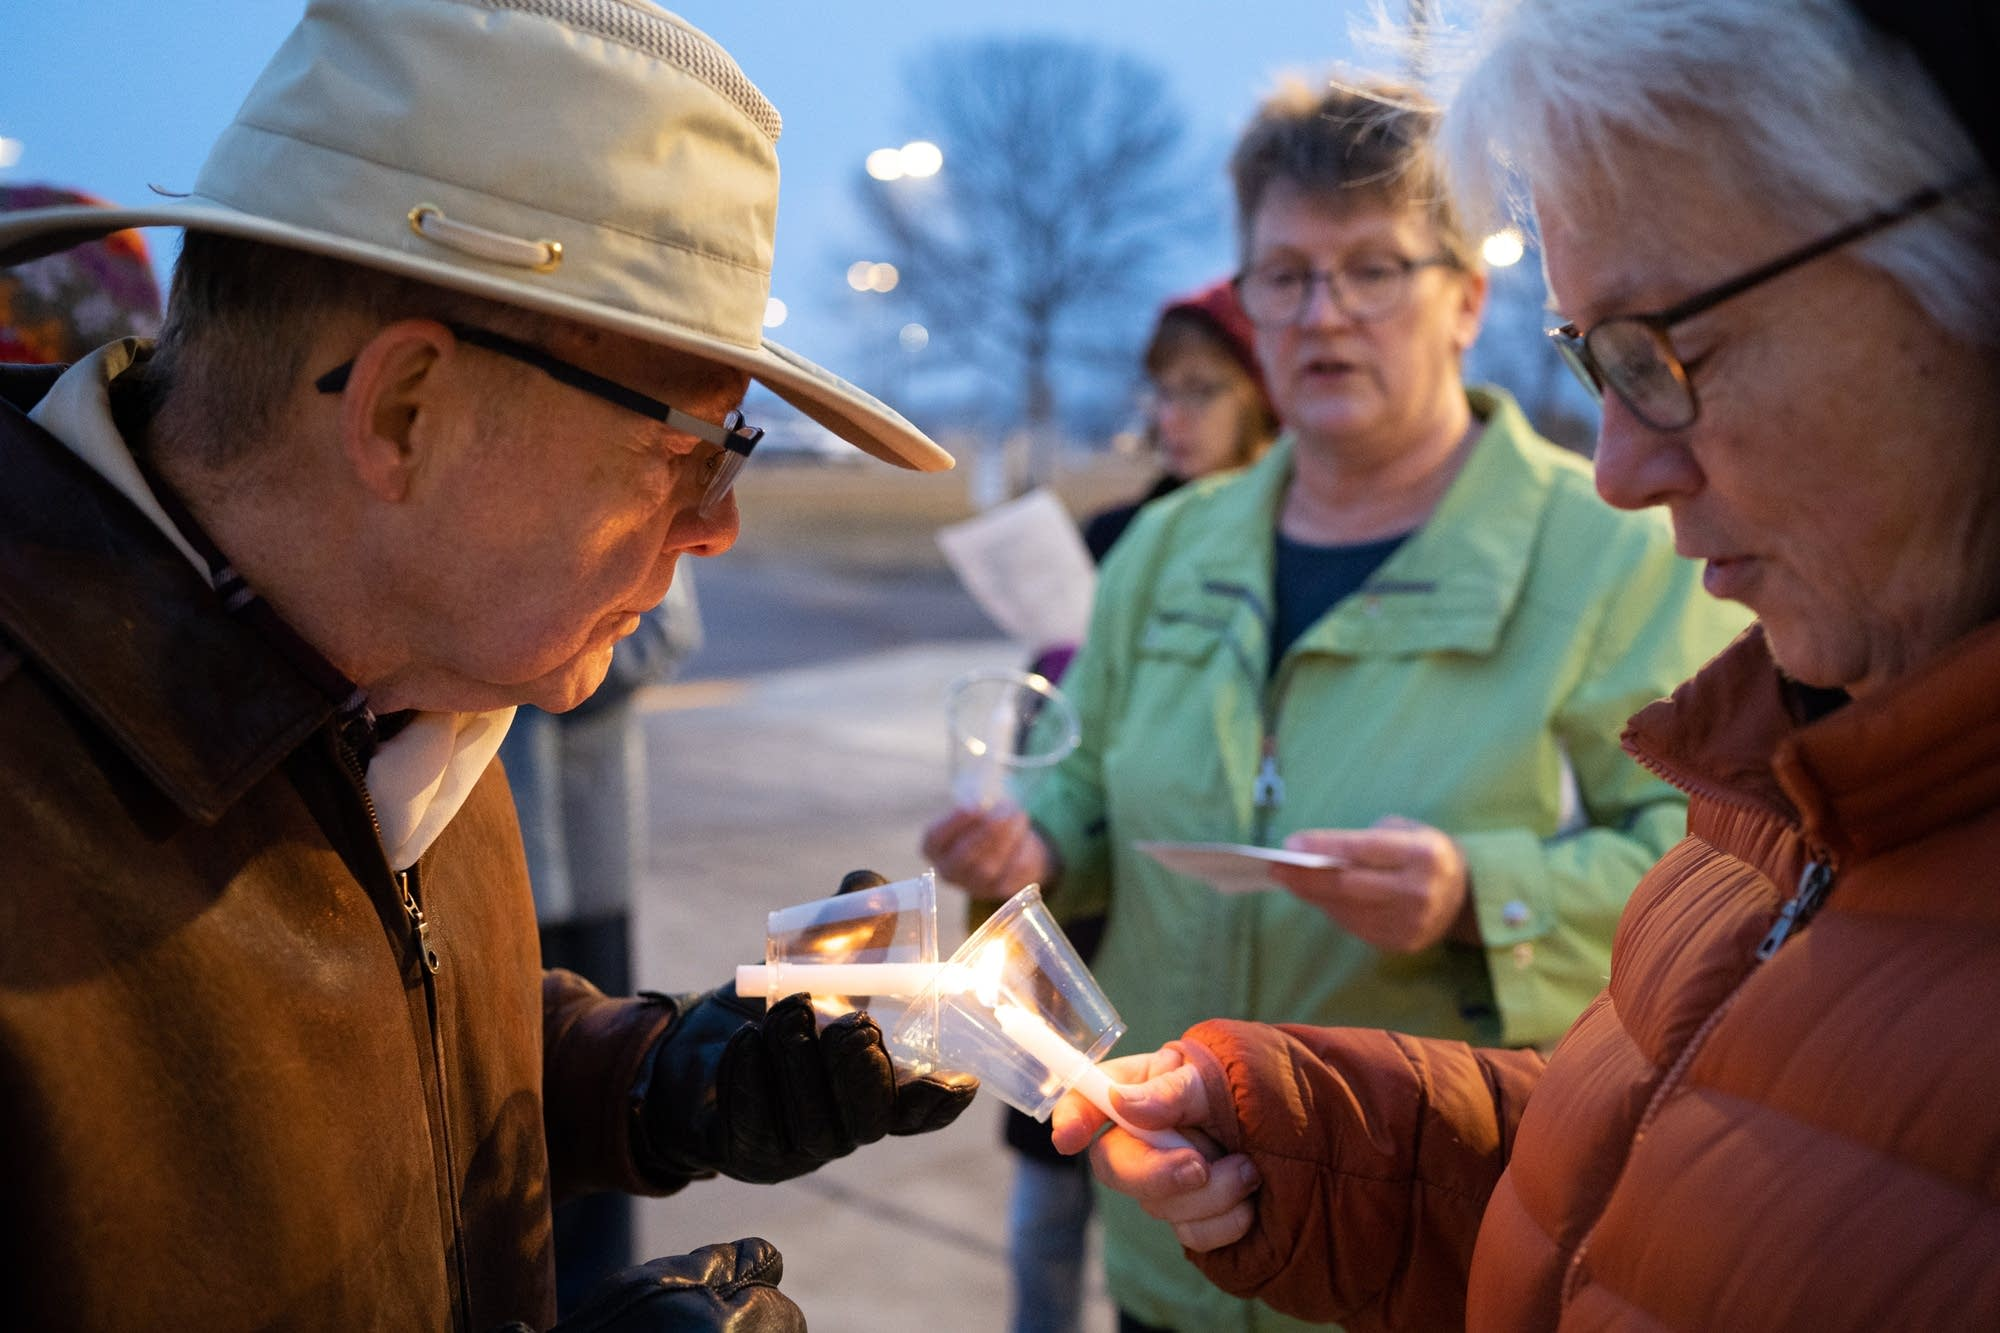 Lawrence Cook, left, lights his candle with Gigi Nauer's.